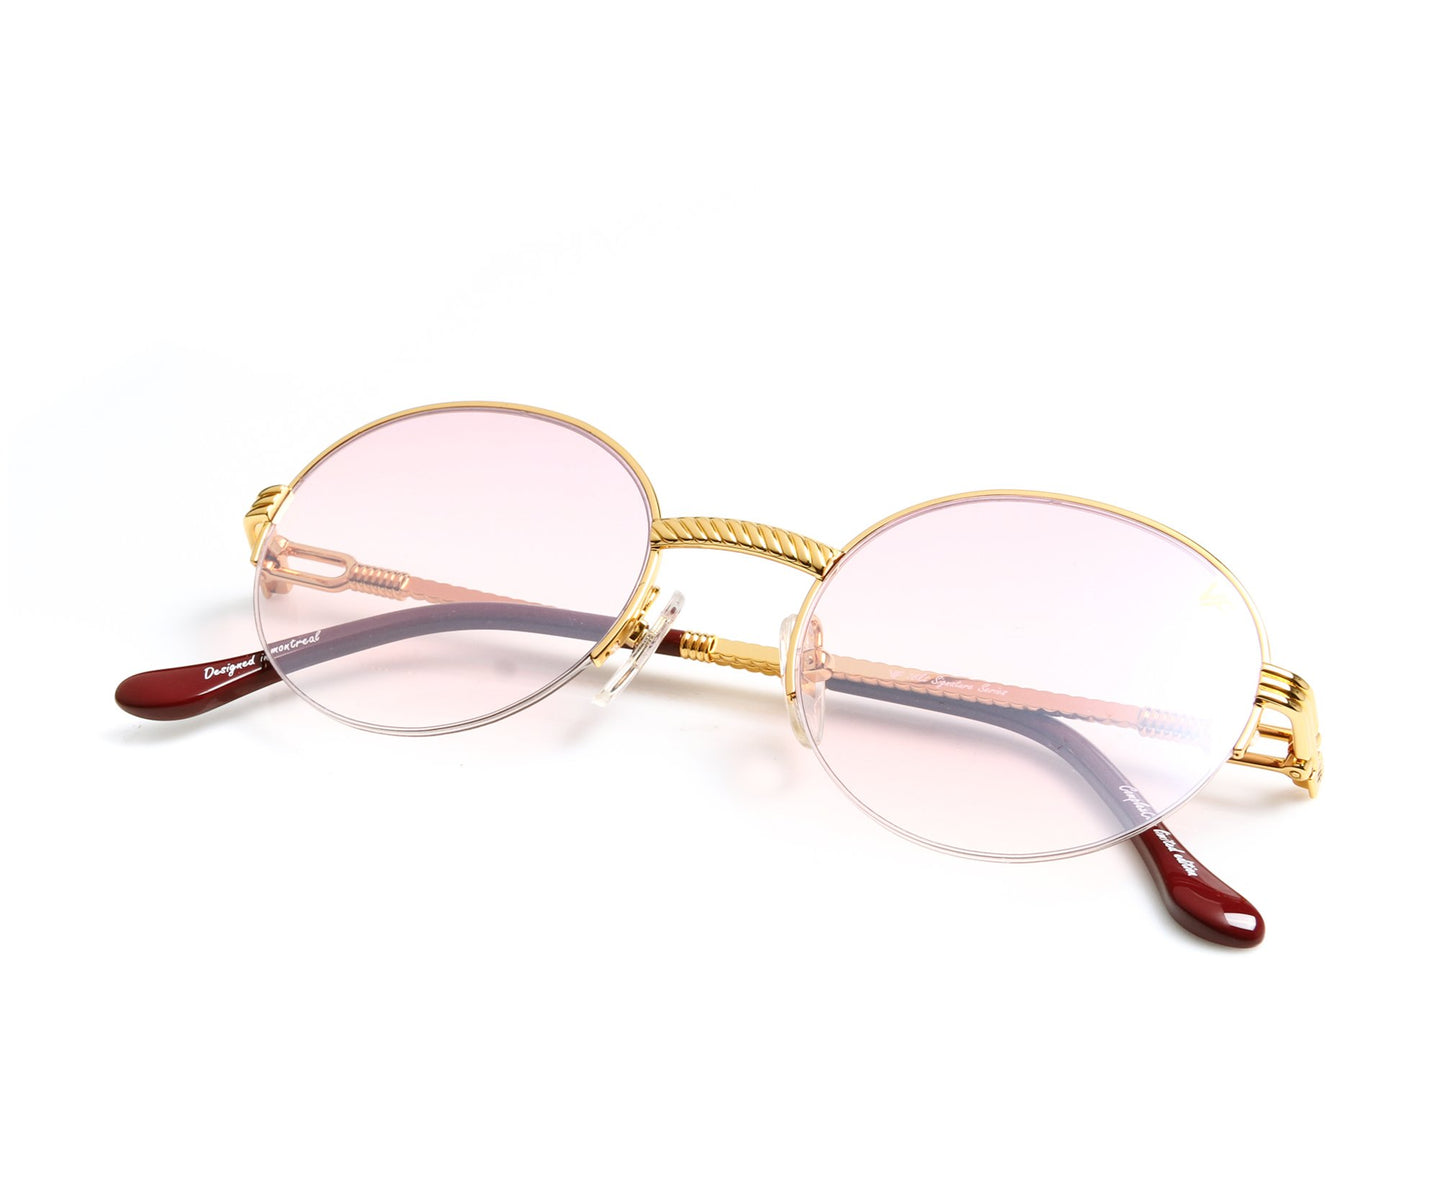 VF 508 Half Rim 18KT Gold (Nickel Pink) Thumb, VF by Vintage Frames , glasses frames, eyeglasses online, eyeglass frames, mens glasses, womens glasses, buy glasses online, designer eyeglasses, vintage sunglasses, retro sunglasses, vintage glasses, sunglass, eyeglass, glasses, lens, vintage frames company, vf